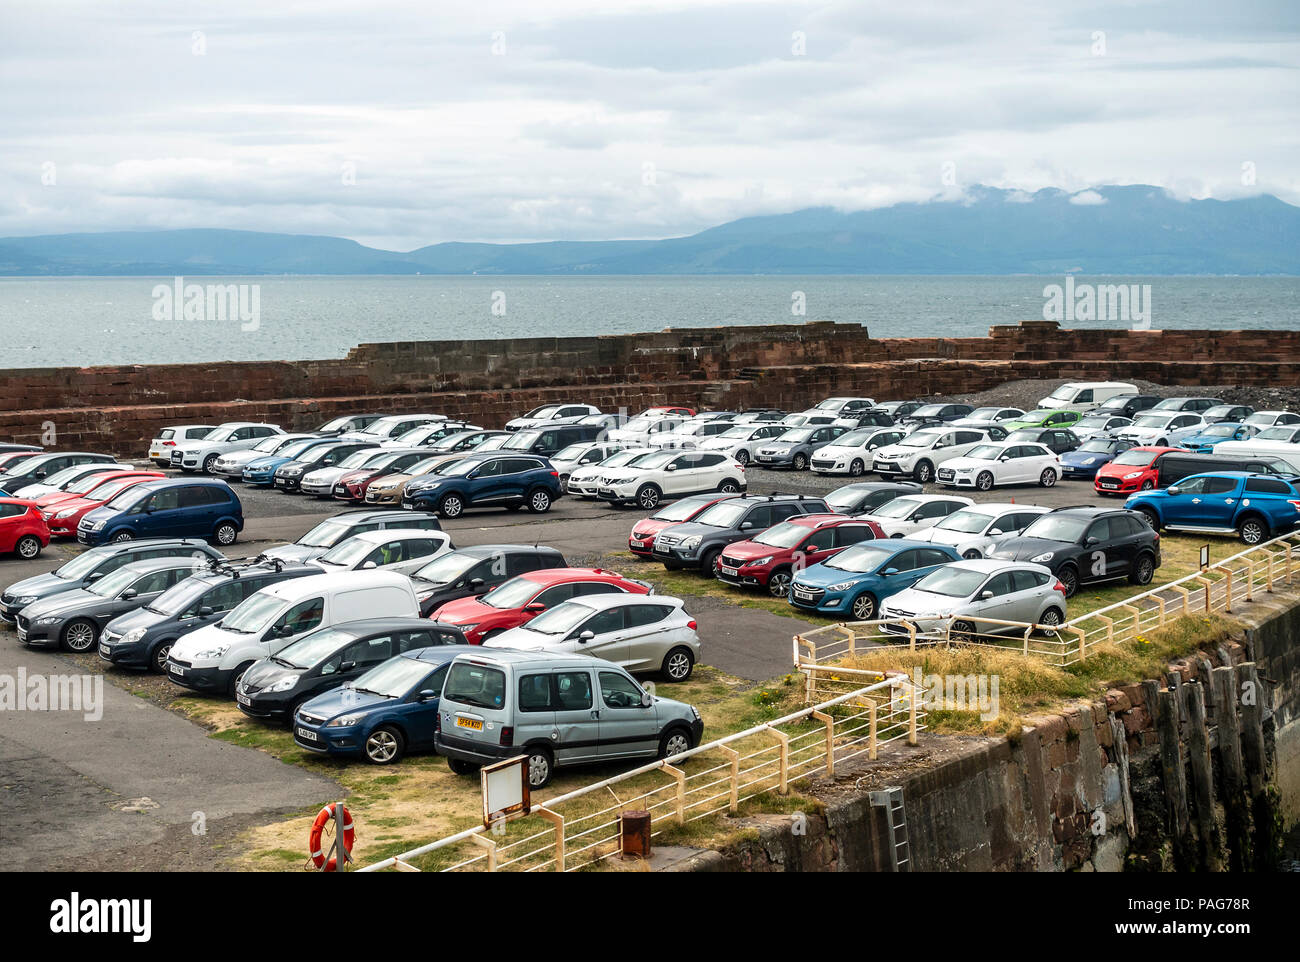 Cars in the car park at Ardrossan Harbour, North Ayshire, with the Isle of Arran (for which Ardrossan is the departure port) in the background. - Stock Image